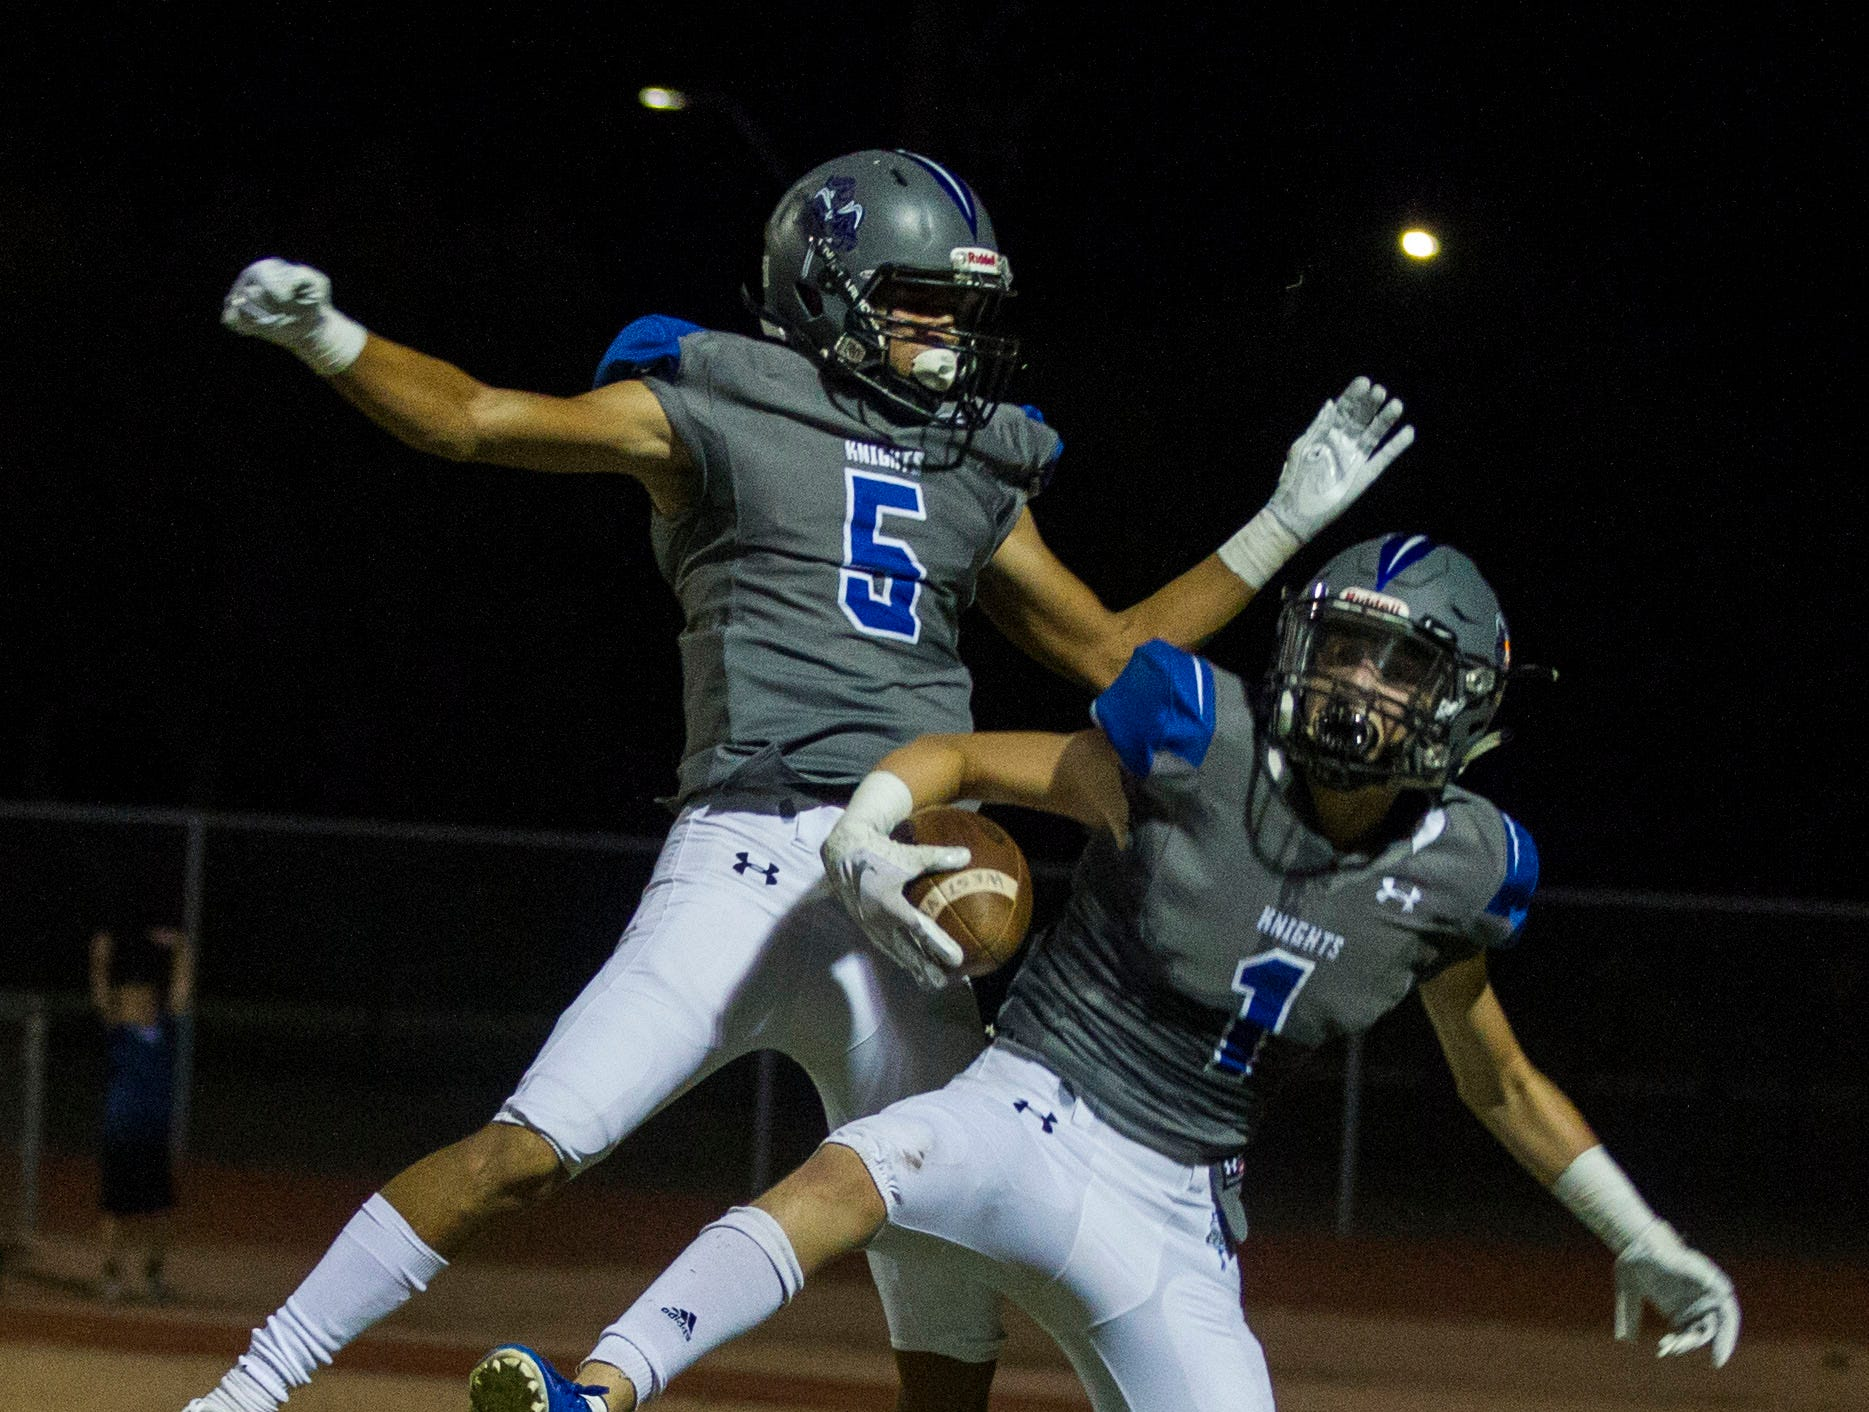 Westview's Isac Hall (5) celebrates with Nathan Young (1) after Young's touchdown against Tolleson during their game in Avondale Friday, Sept. 28, 2018. #azhsfb